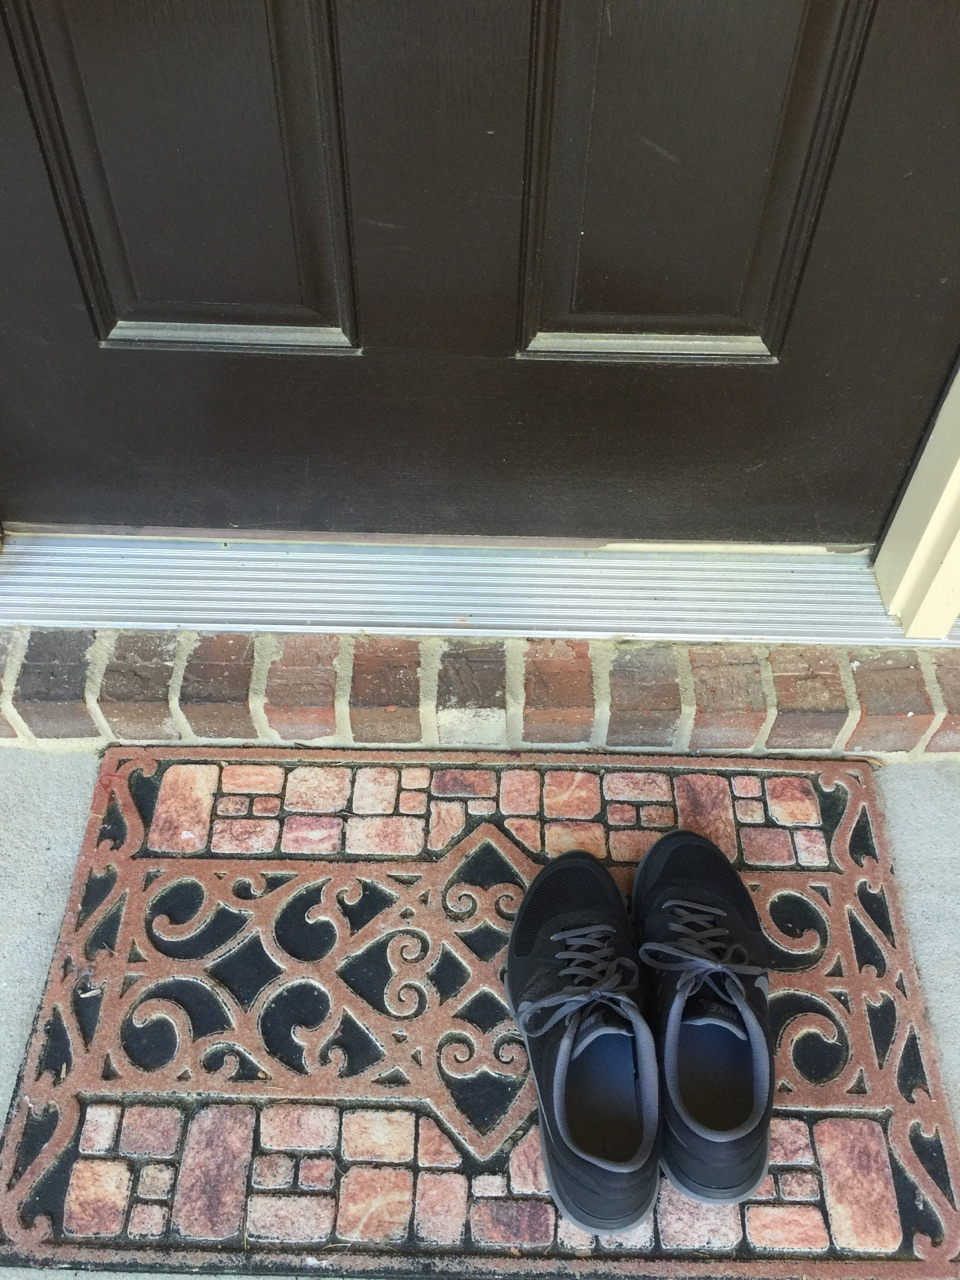 University of Georgia Cooperative Extension experts say removing your shoes before going indoors can reduce the amount of pollen you track into your home. Other ways to reduce the amount of pollen indoors include wiping your pets' paws before allowing them to come inside and cleaning floors and surfaces often.